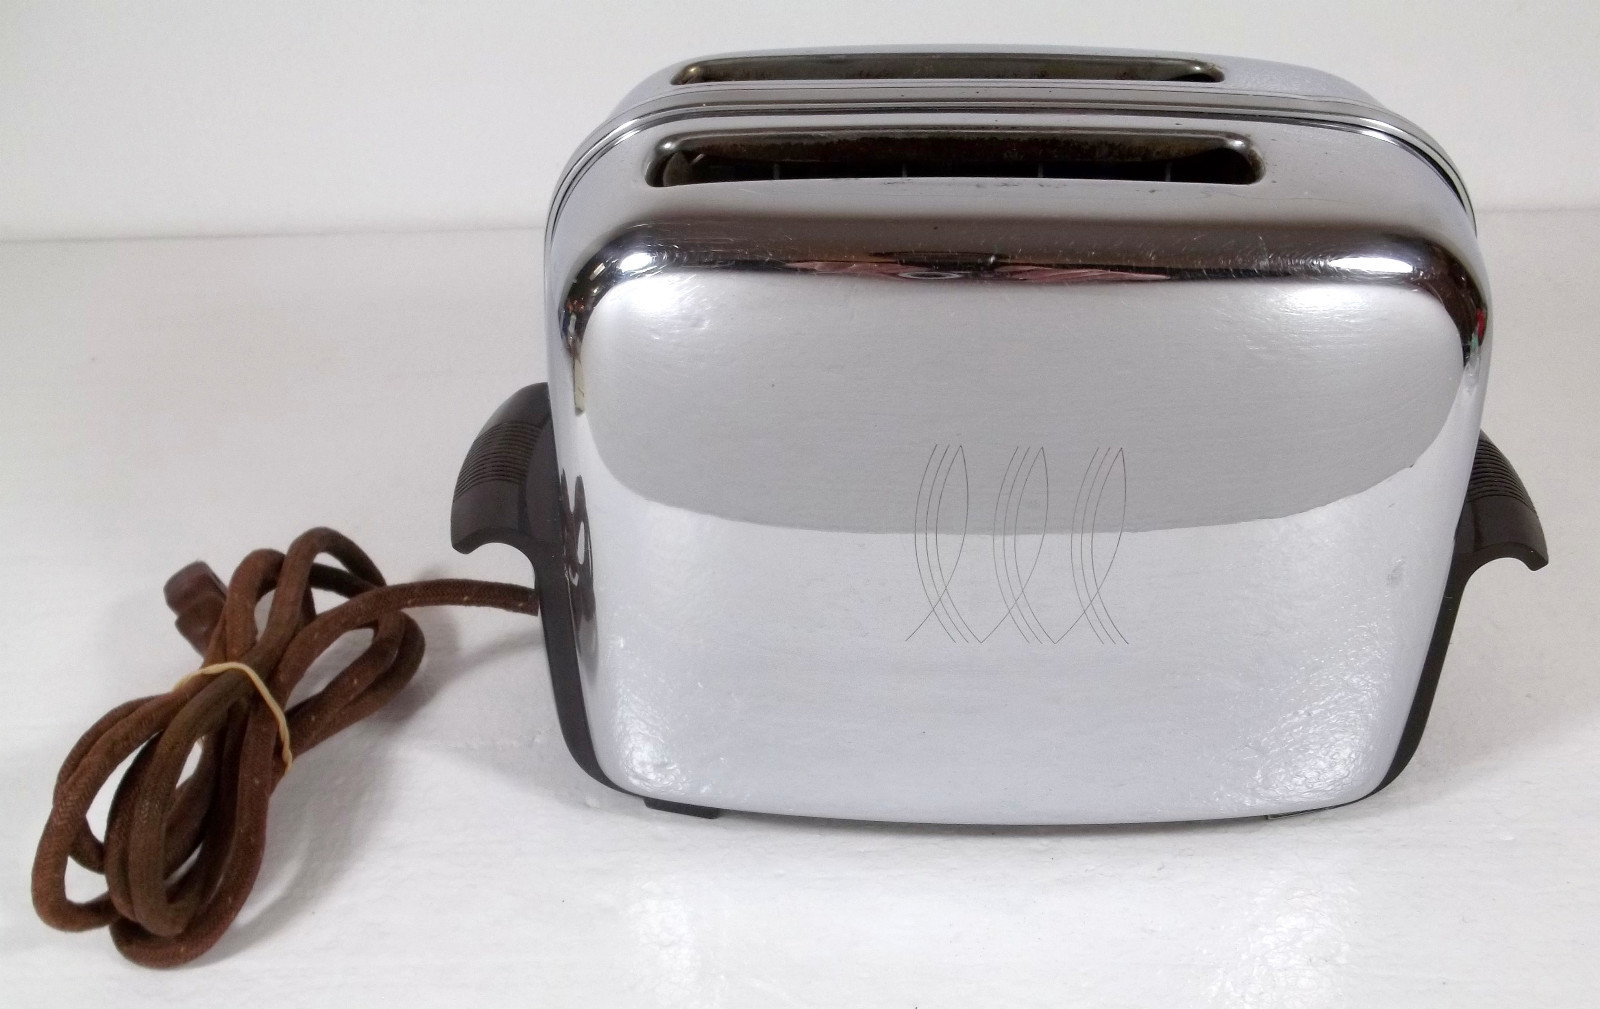 Electric Toaster History ~ Vintage toastmaster automatic pop up toaster the history